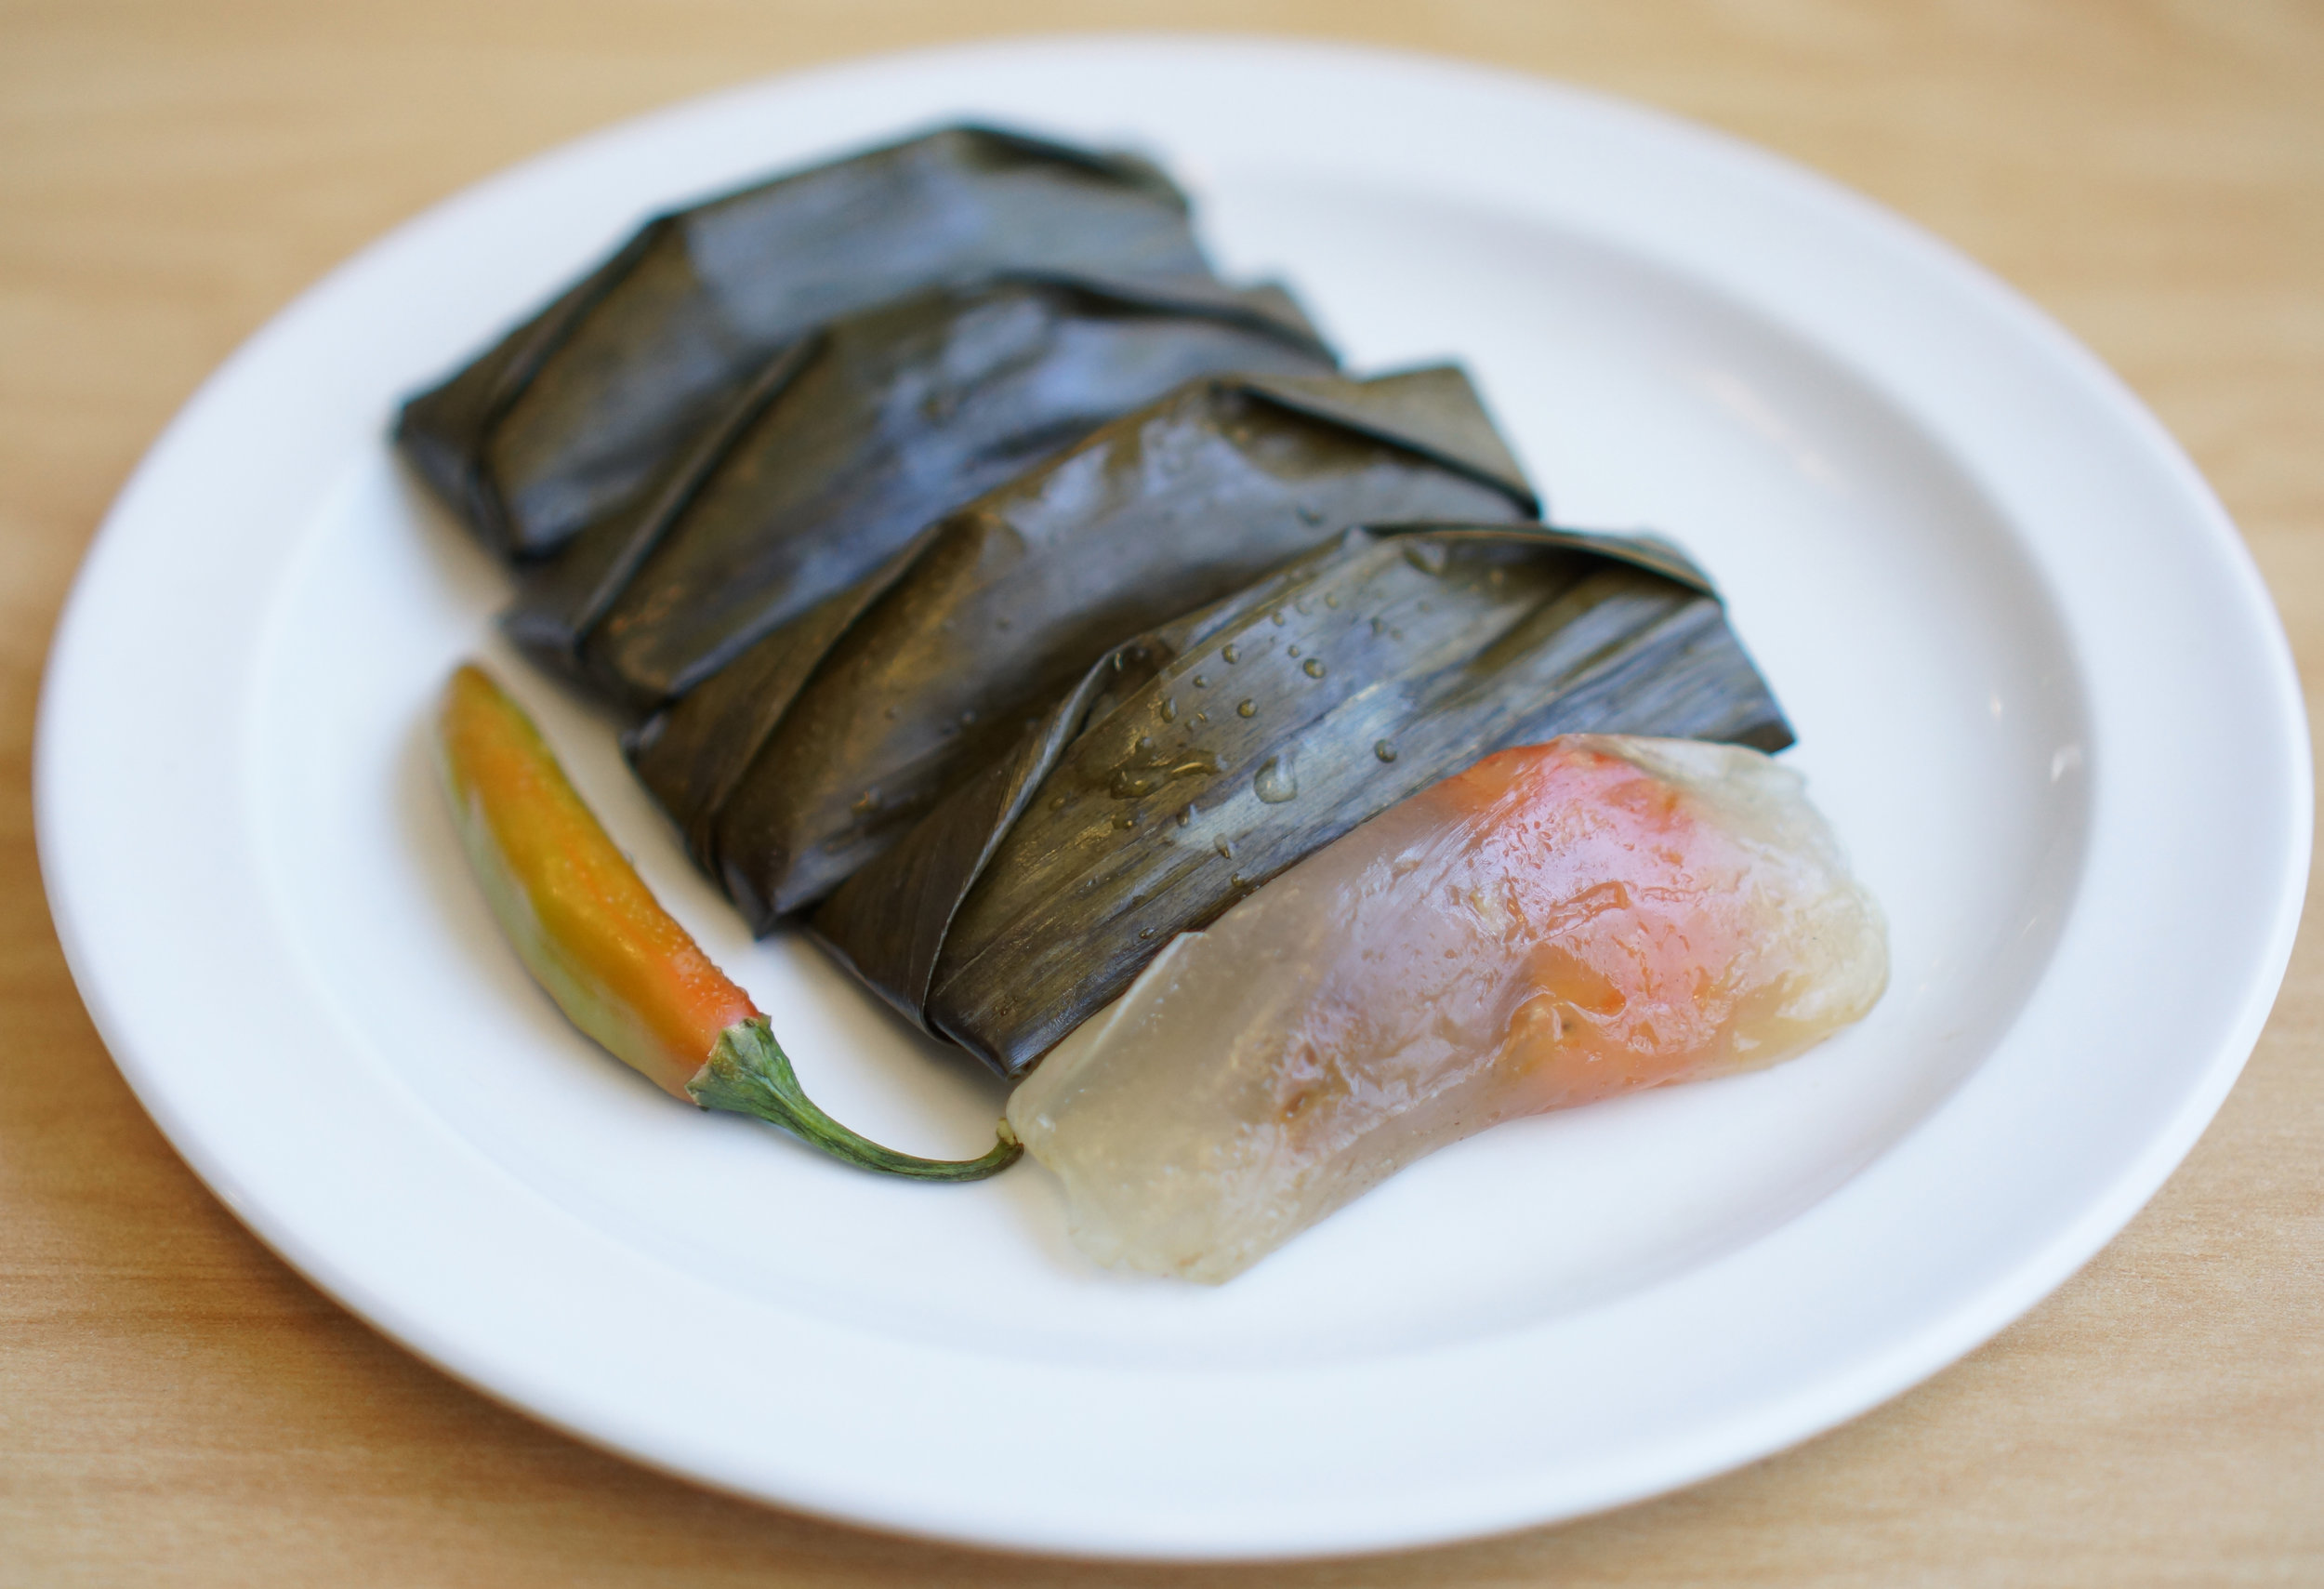 Bánh Lọc - Popular appetizer in Huế. Seasoned shrimp and pork tapioca dumpling wrapped in banana leaves steamed using traditional methods